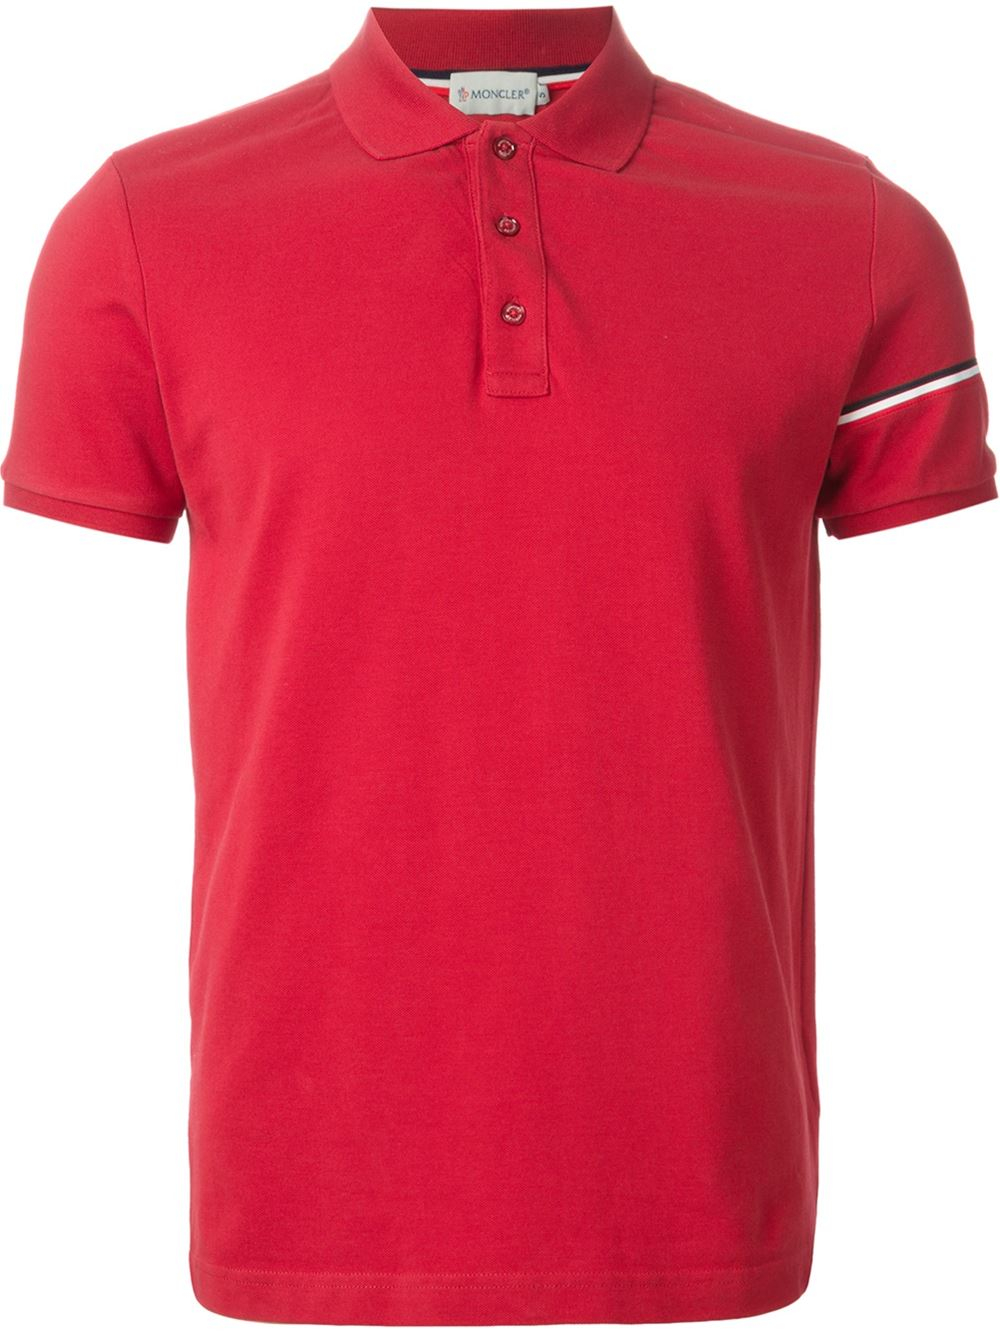 Moncler classic polo shirt in red for men lyst for Moncler polo shirt sale